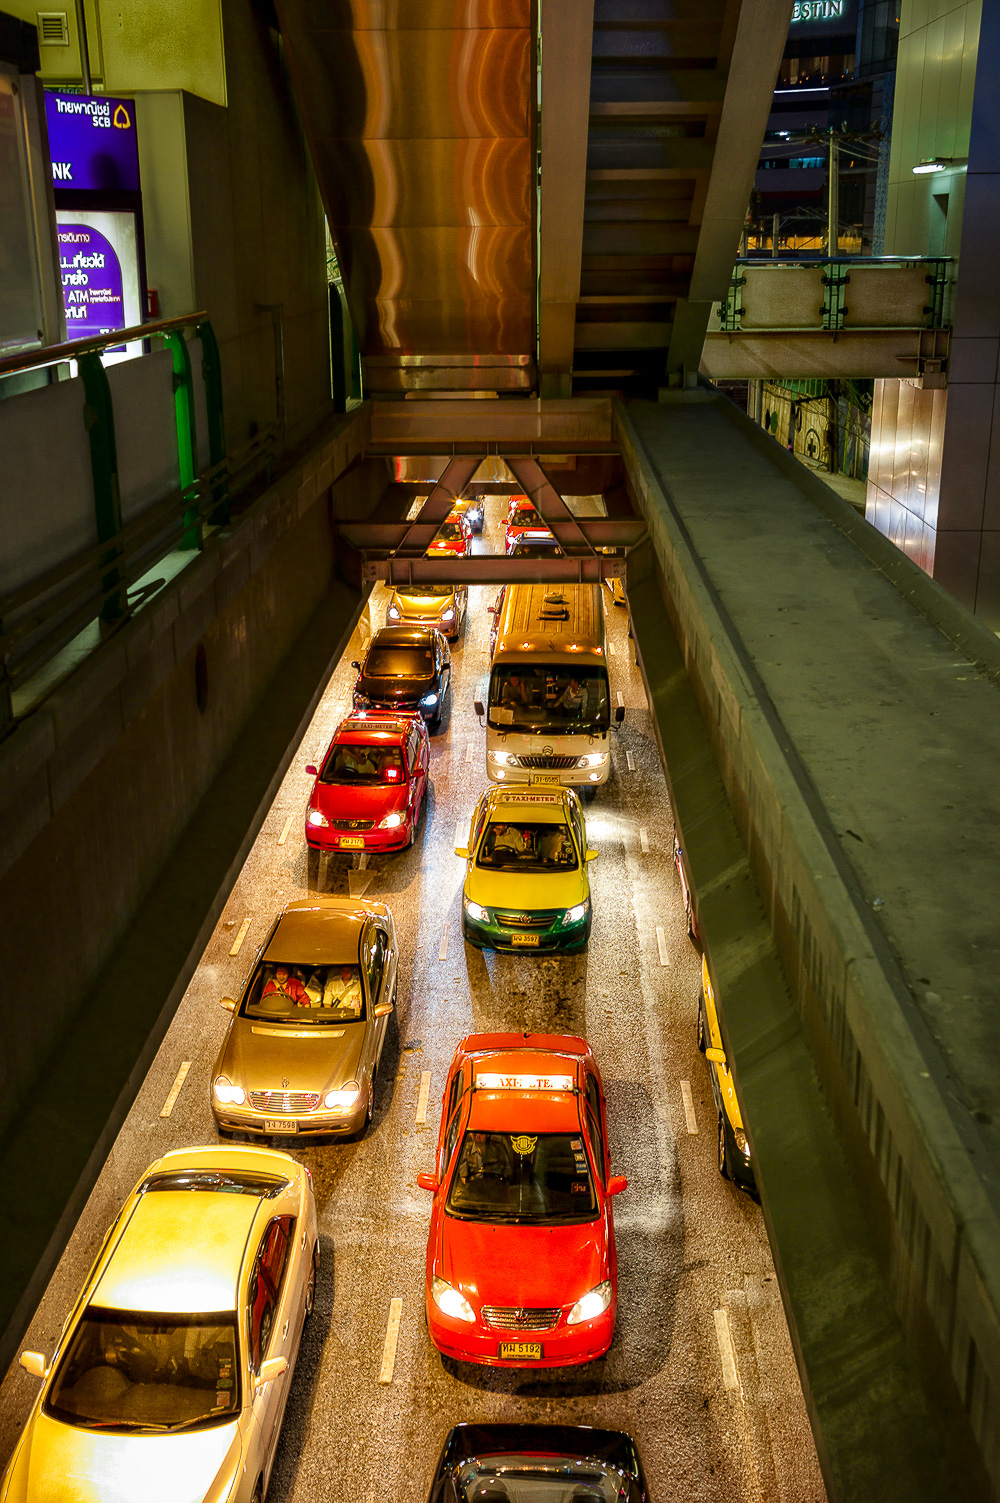 Traffic congestion  on the streets of  Sukhumvit  at night in  Bangkok, Thailand .